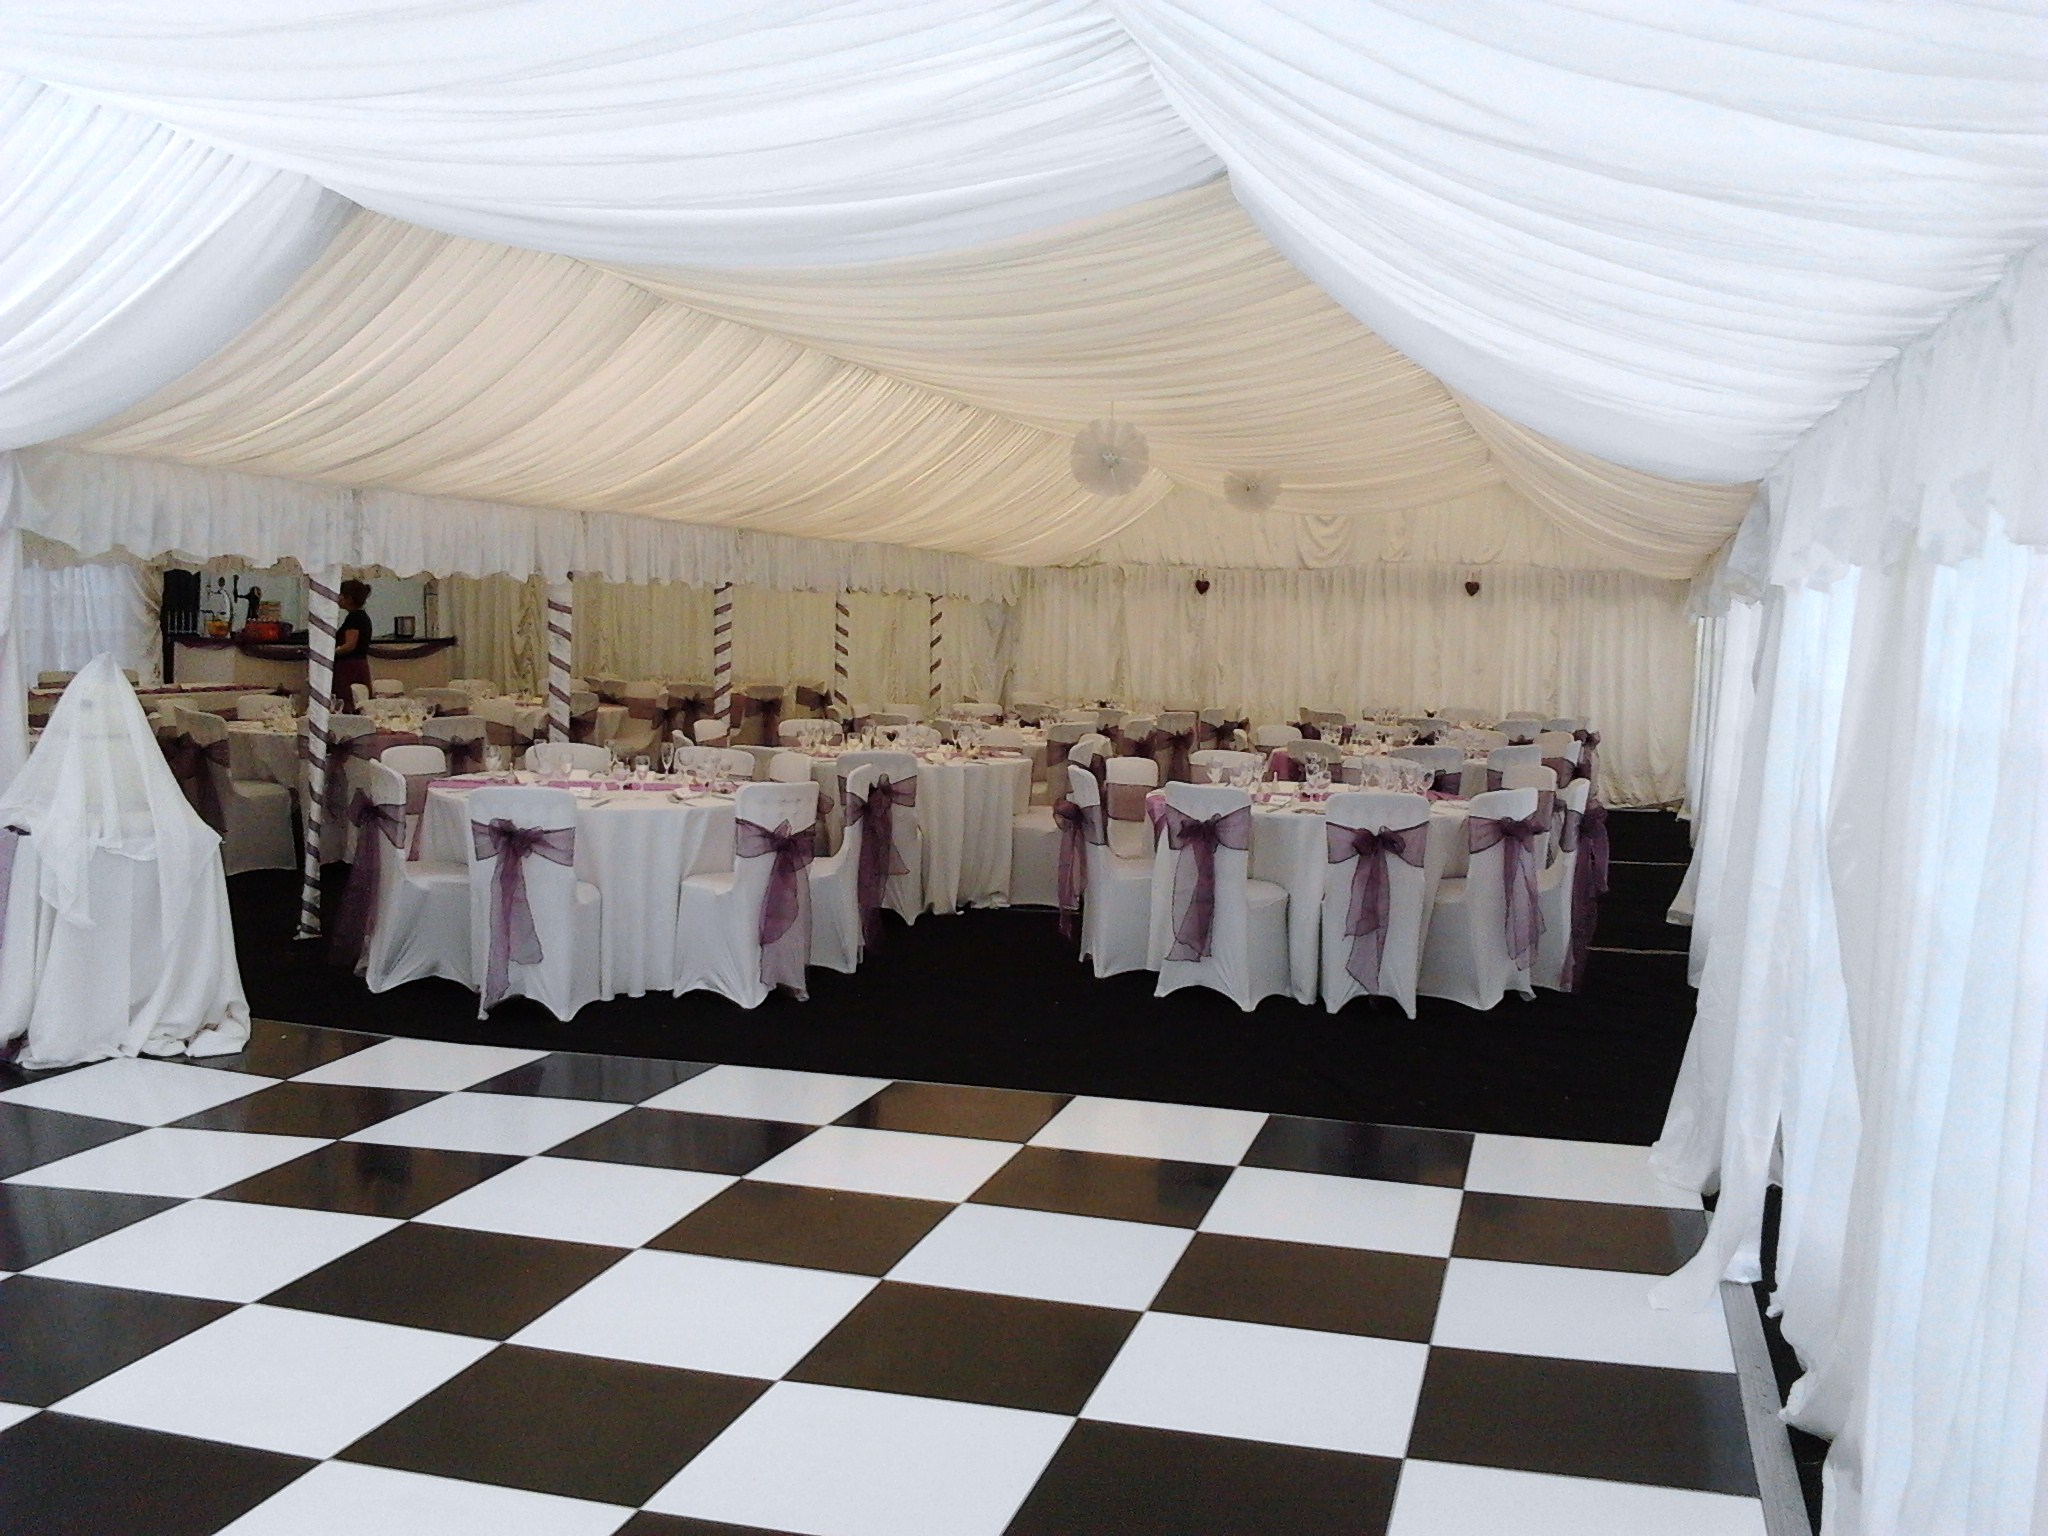 The opportunities donu0027t stop at hire companies either our gazebos are perfect for market traders. Market trade can be a great way to make money ... & Gala Tent Marquees u2013 Itu0027s not an event without a Gala Tent http ...